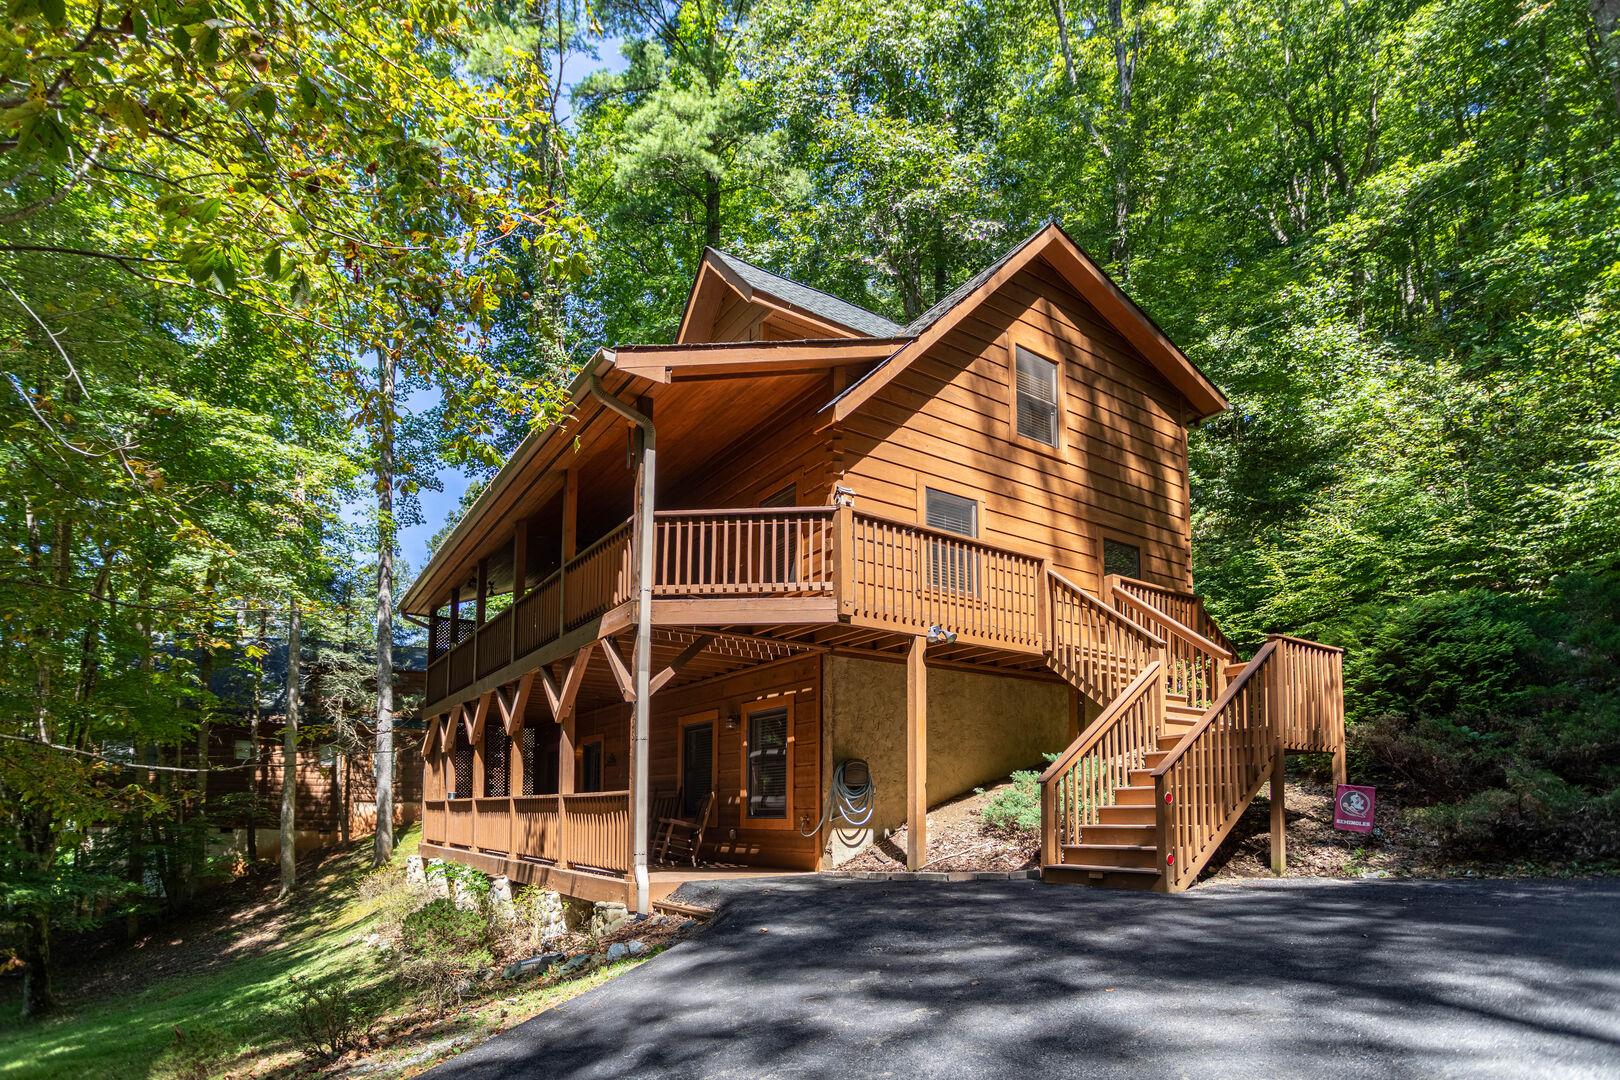 A Riversound Valle Crucis Cabin With Large Hot Tub Pool Poker Table River Cabins For Rent In Banner Elk North Carolina United States